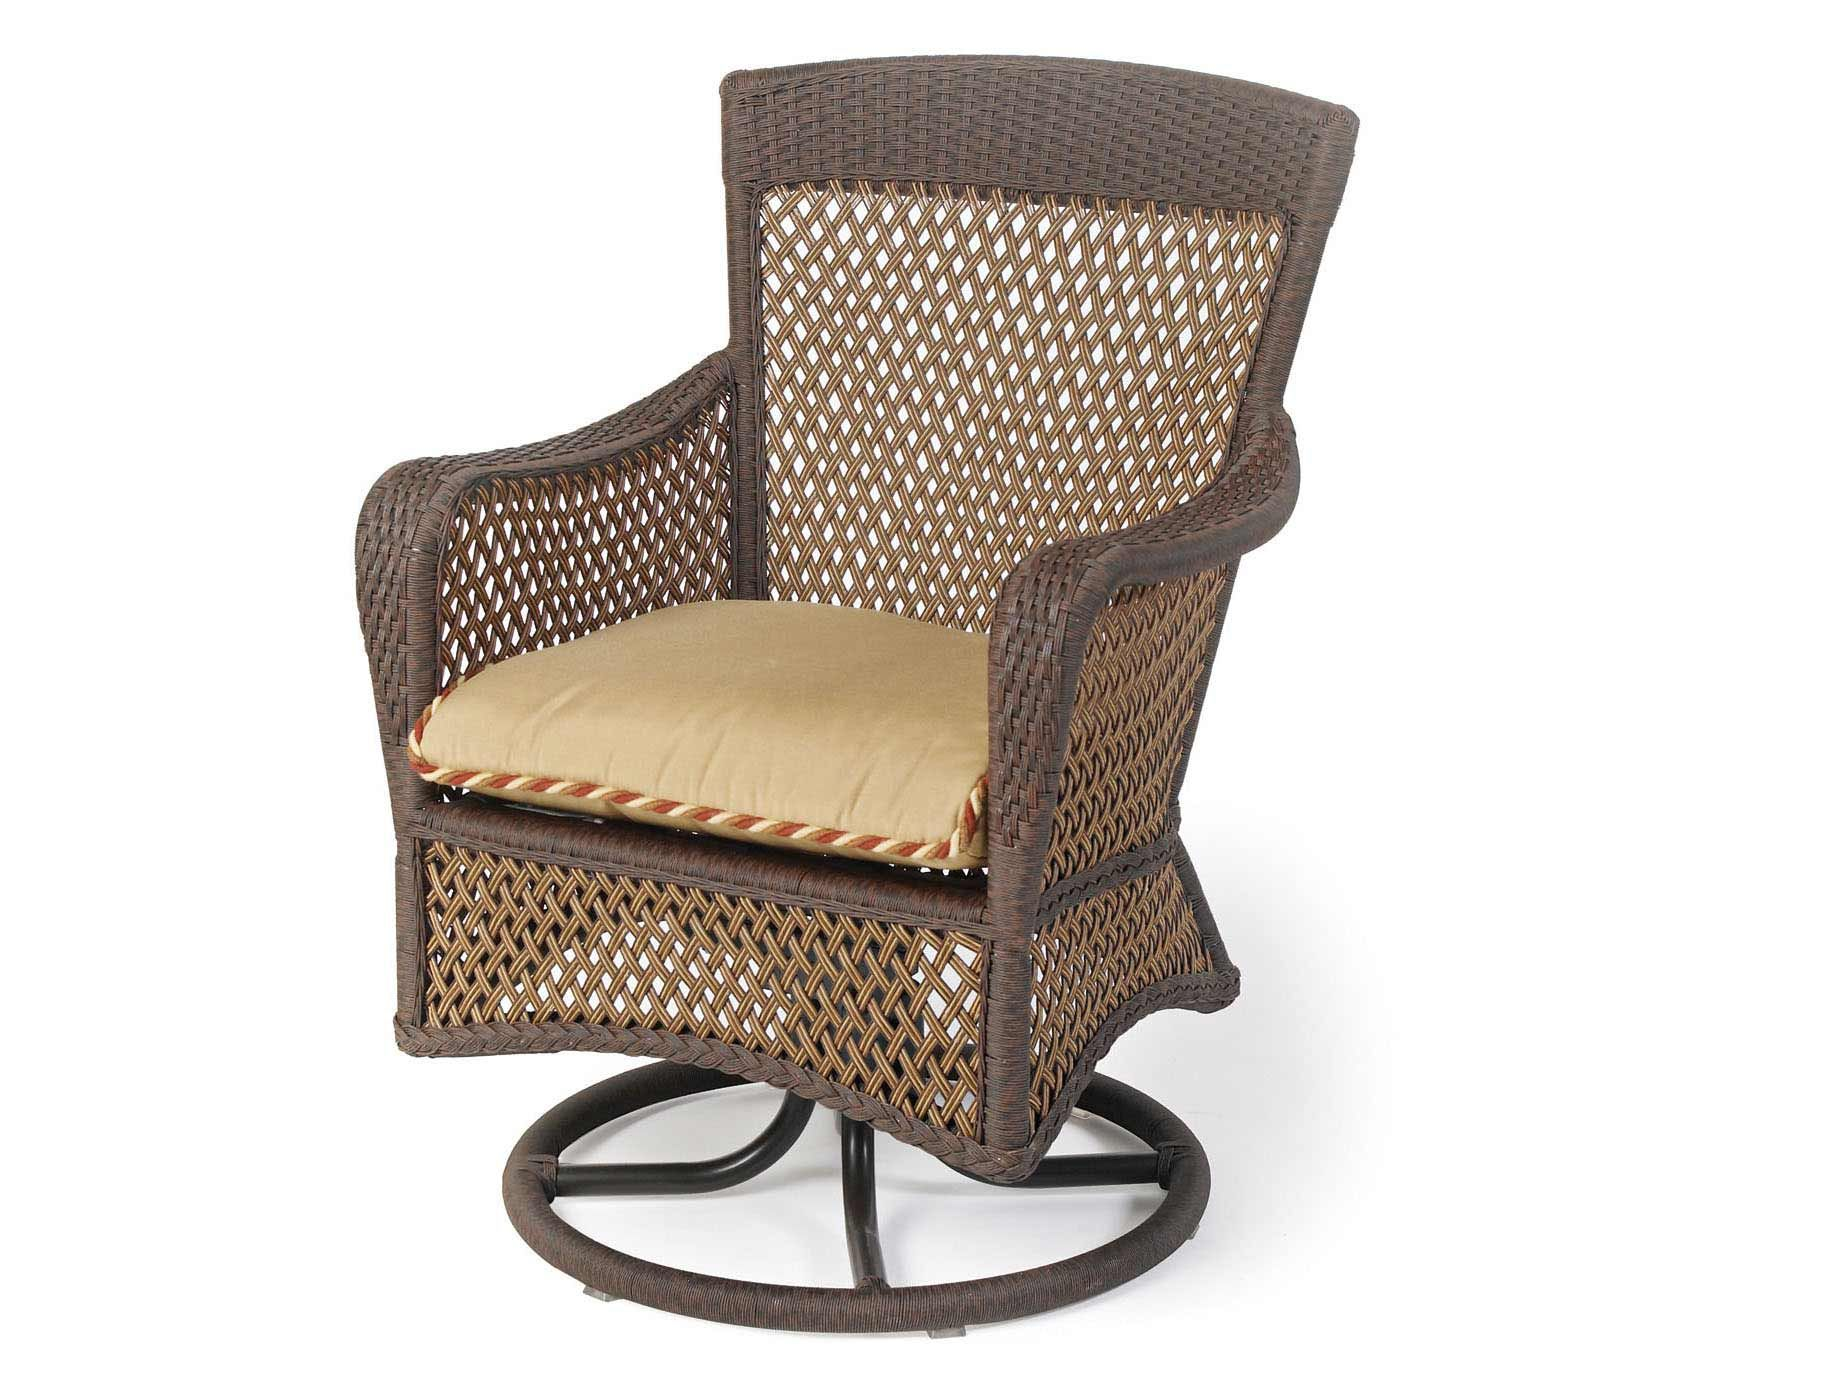 Modern Outdoor Swivel Chairs - http://clan.dlwilsonranch.com/modern-outdoor-swivel-chairs/ : #OutdoorChairs Outdoor swivel chairs – The Adirondack chairs or Muskoka have a design comfortable to wear outdoors. They are low-sitting, half-reclining and perfect to rest in a garden. Building an Adirondack chair in a sense, it becomes easier because it has fewer parts, and in another sense, it is...